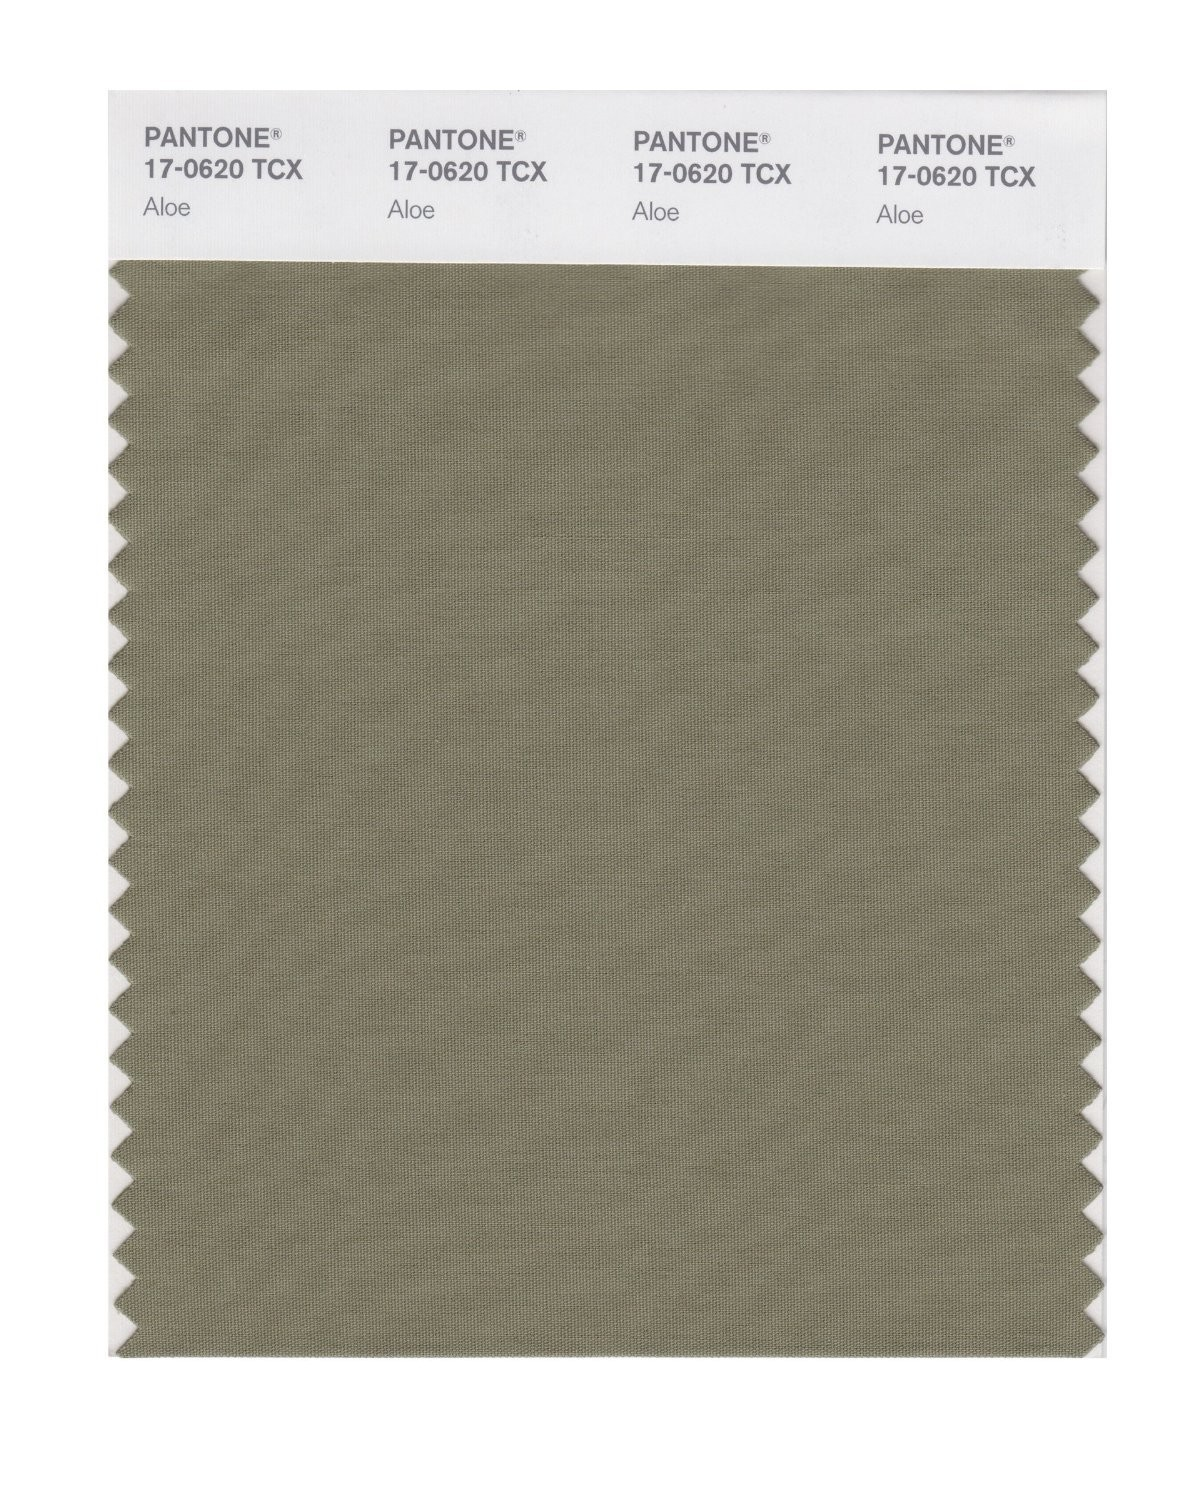 Pantone 17-0620 TCX Swatch Card Aloe